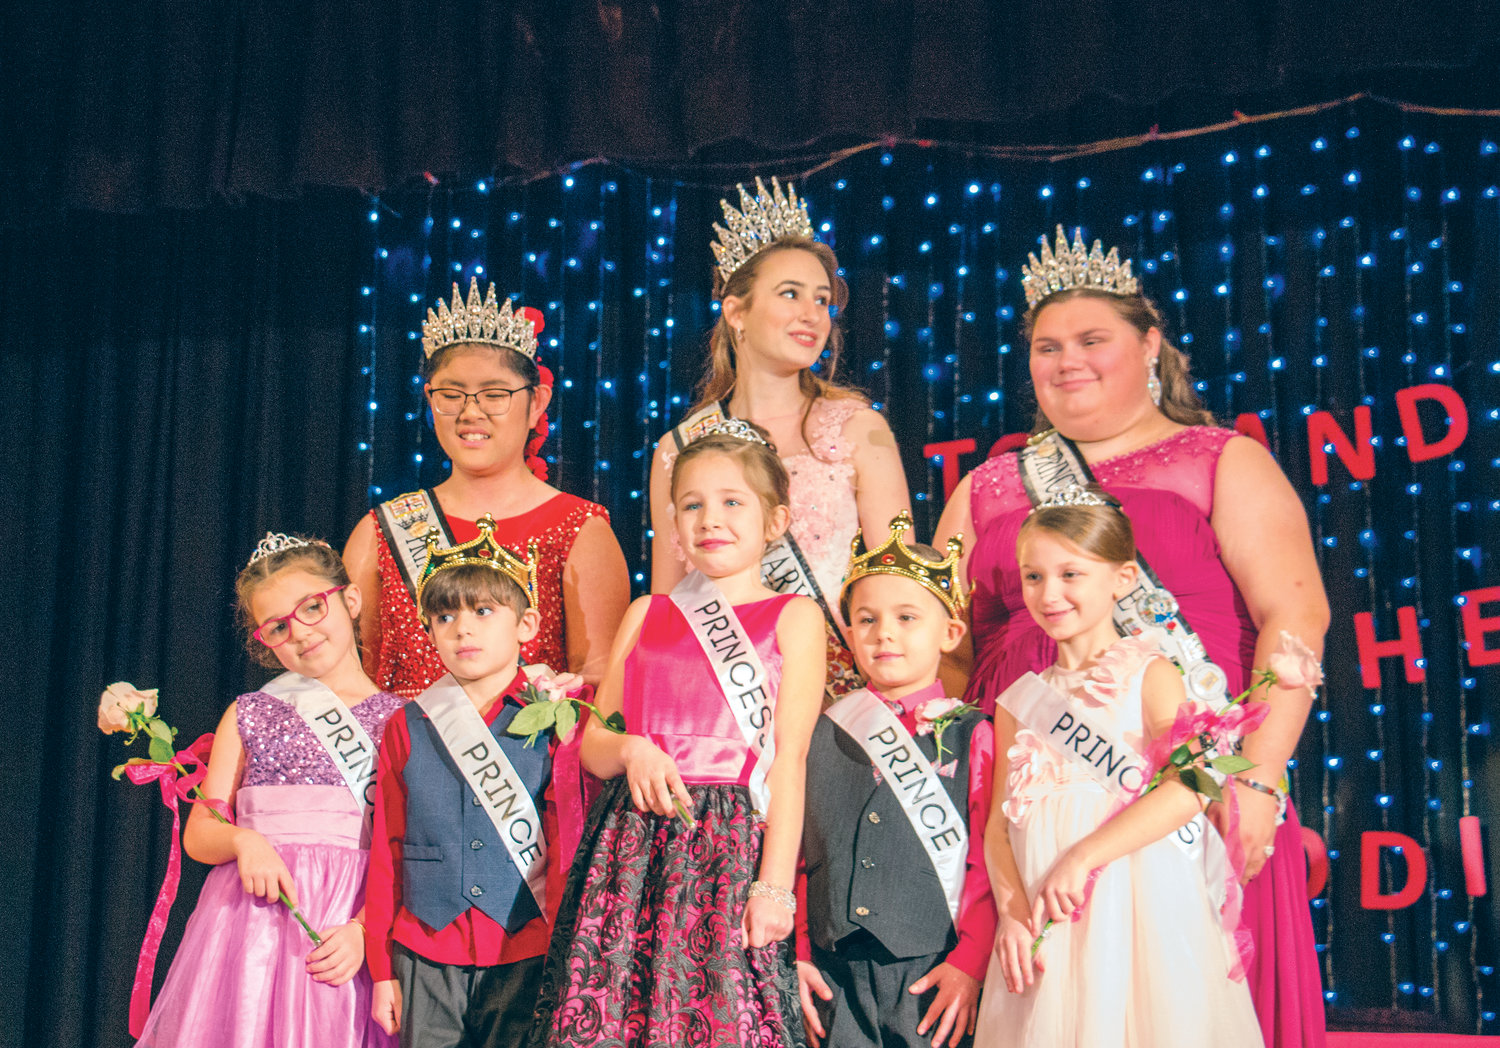 Outgoing 2019 Rhody Royalty, from left, Ellinne Thorton, Mary Neville and Kaylee Krajewski crowned the 2020 junior royalty from area elementary schools.